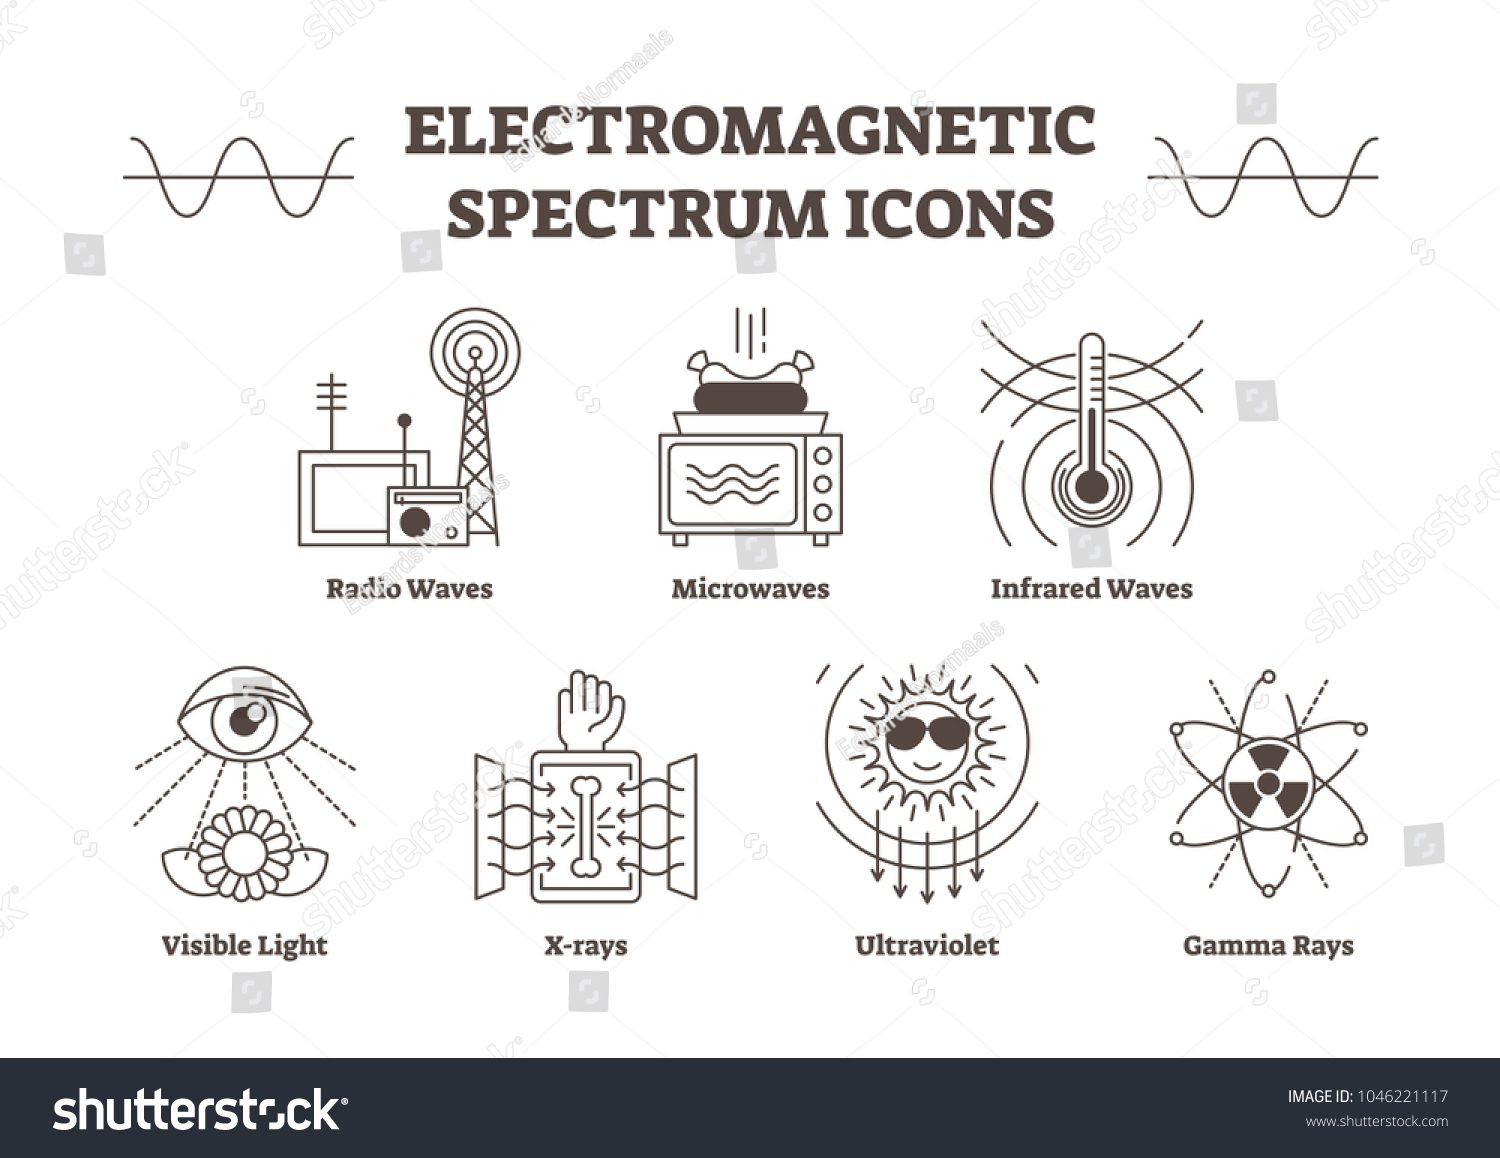 Electromagnetic Spectrum Outline Vector Icons All Stock Radio Waves Diagram The Basic Shape Of Wave Types Microwave Infrared